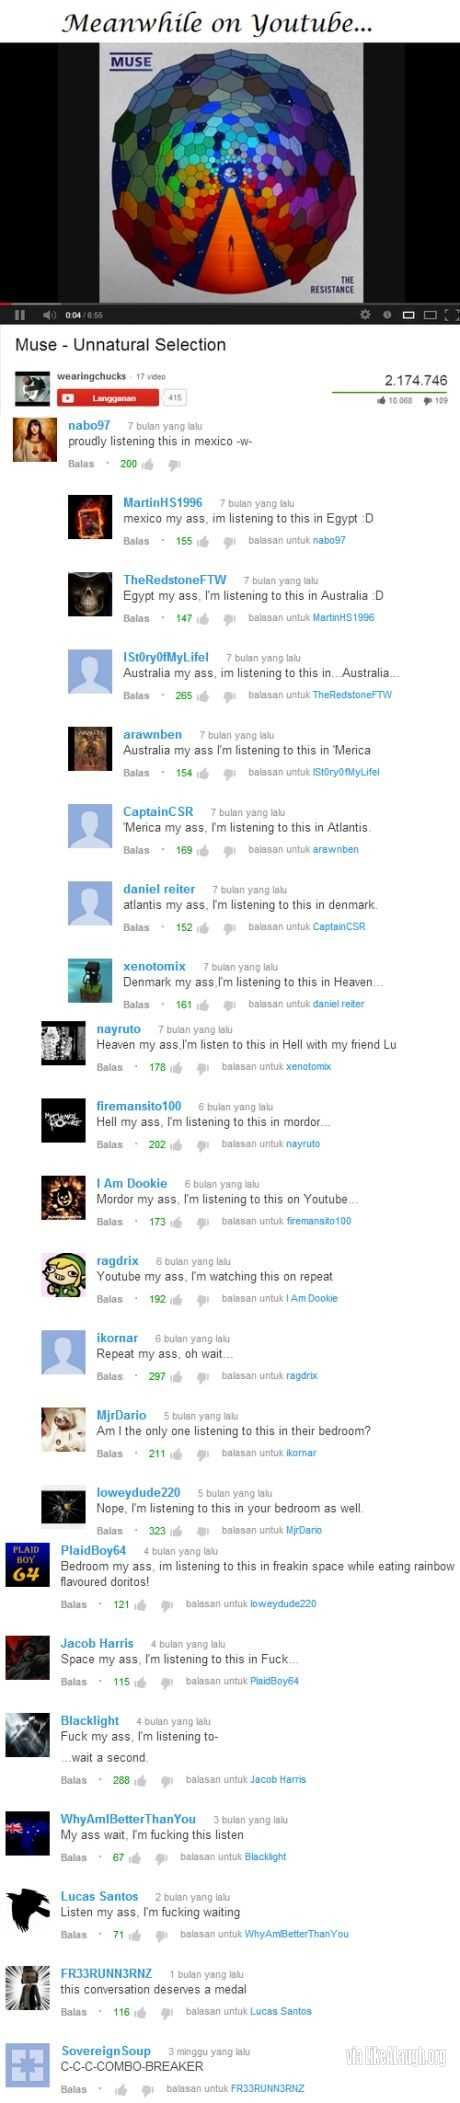 Meanwhile on youtube... XD, this is just plain amazing!